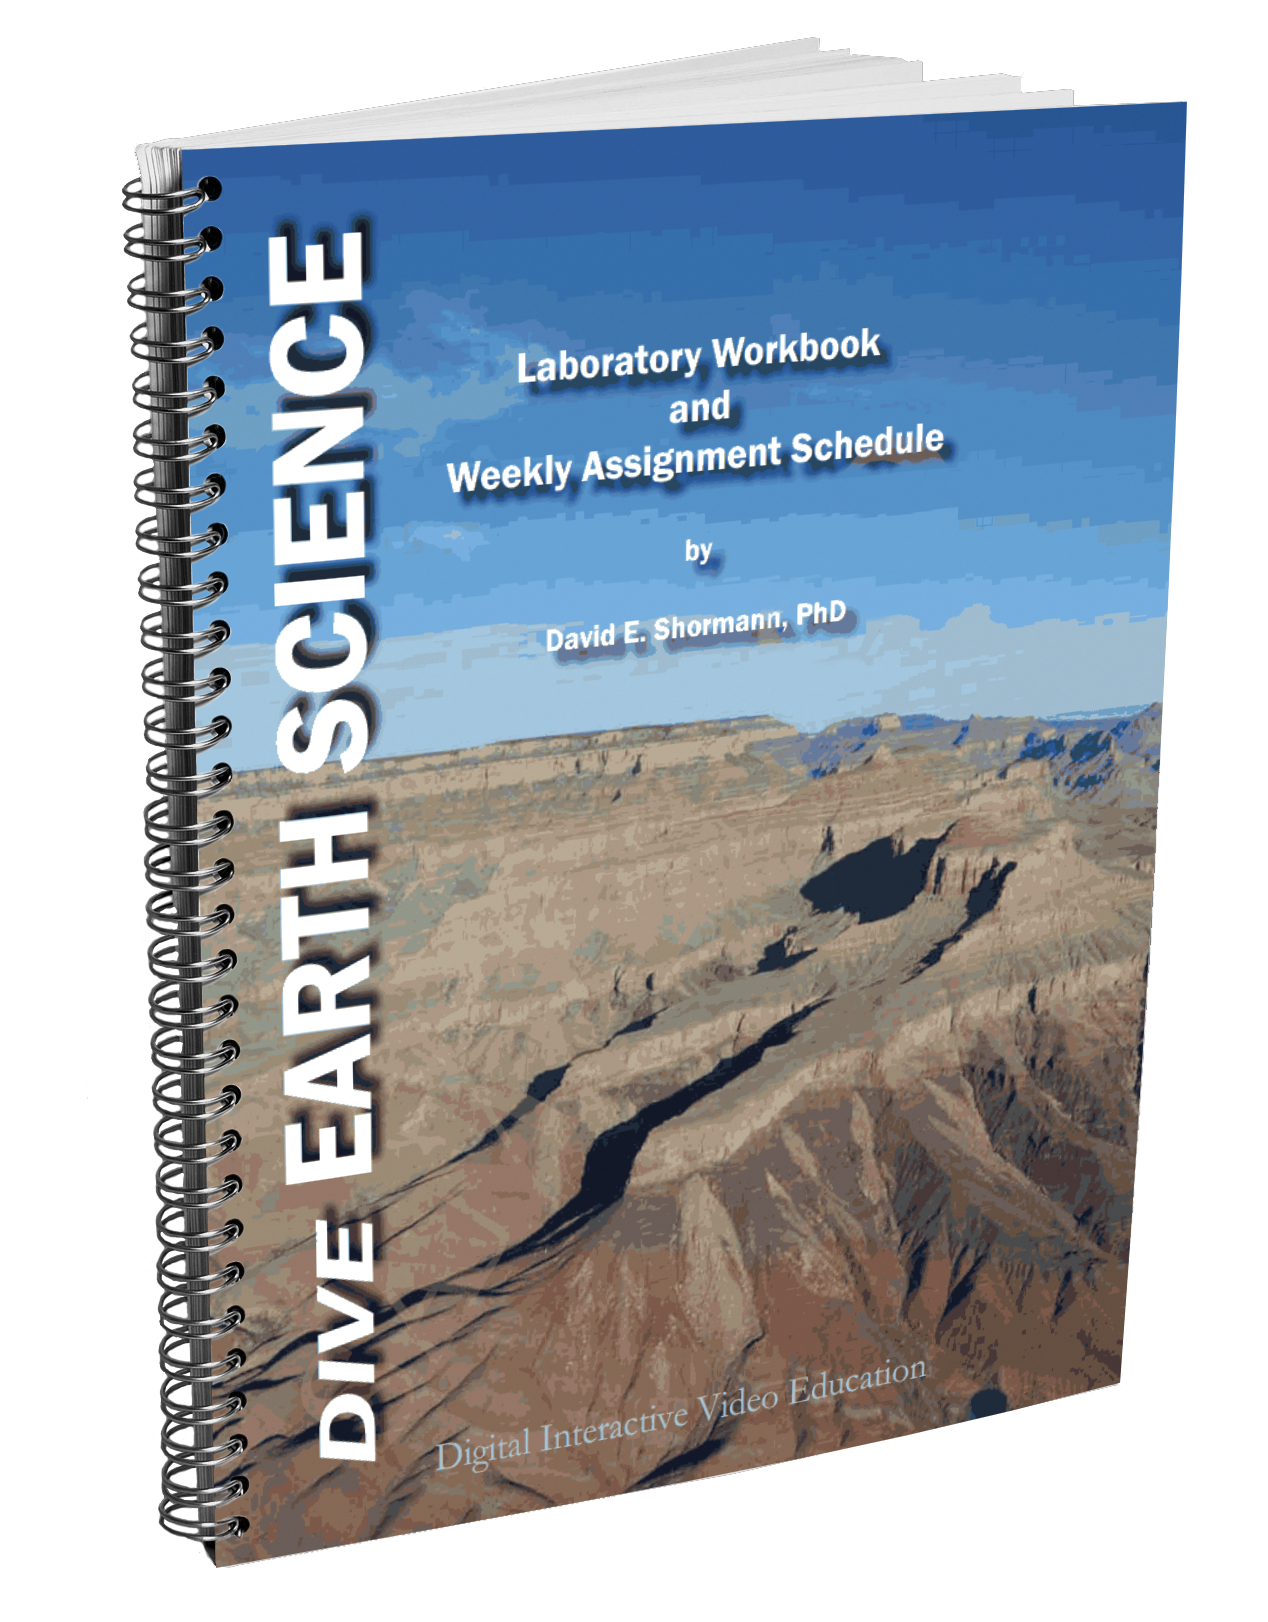 earth-science-lab-workbook-manual-web-no-bg-3d.png